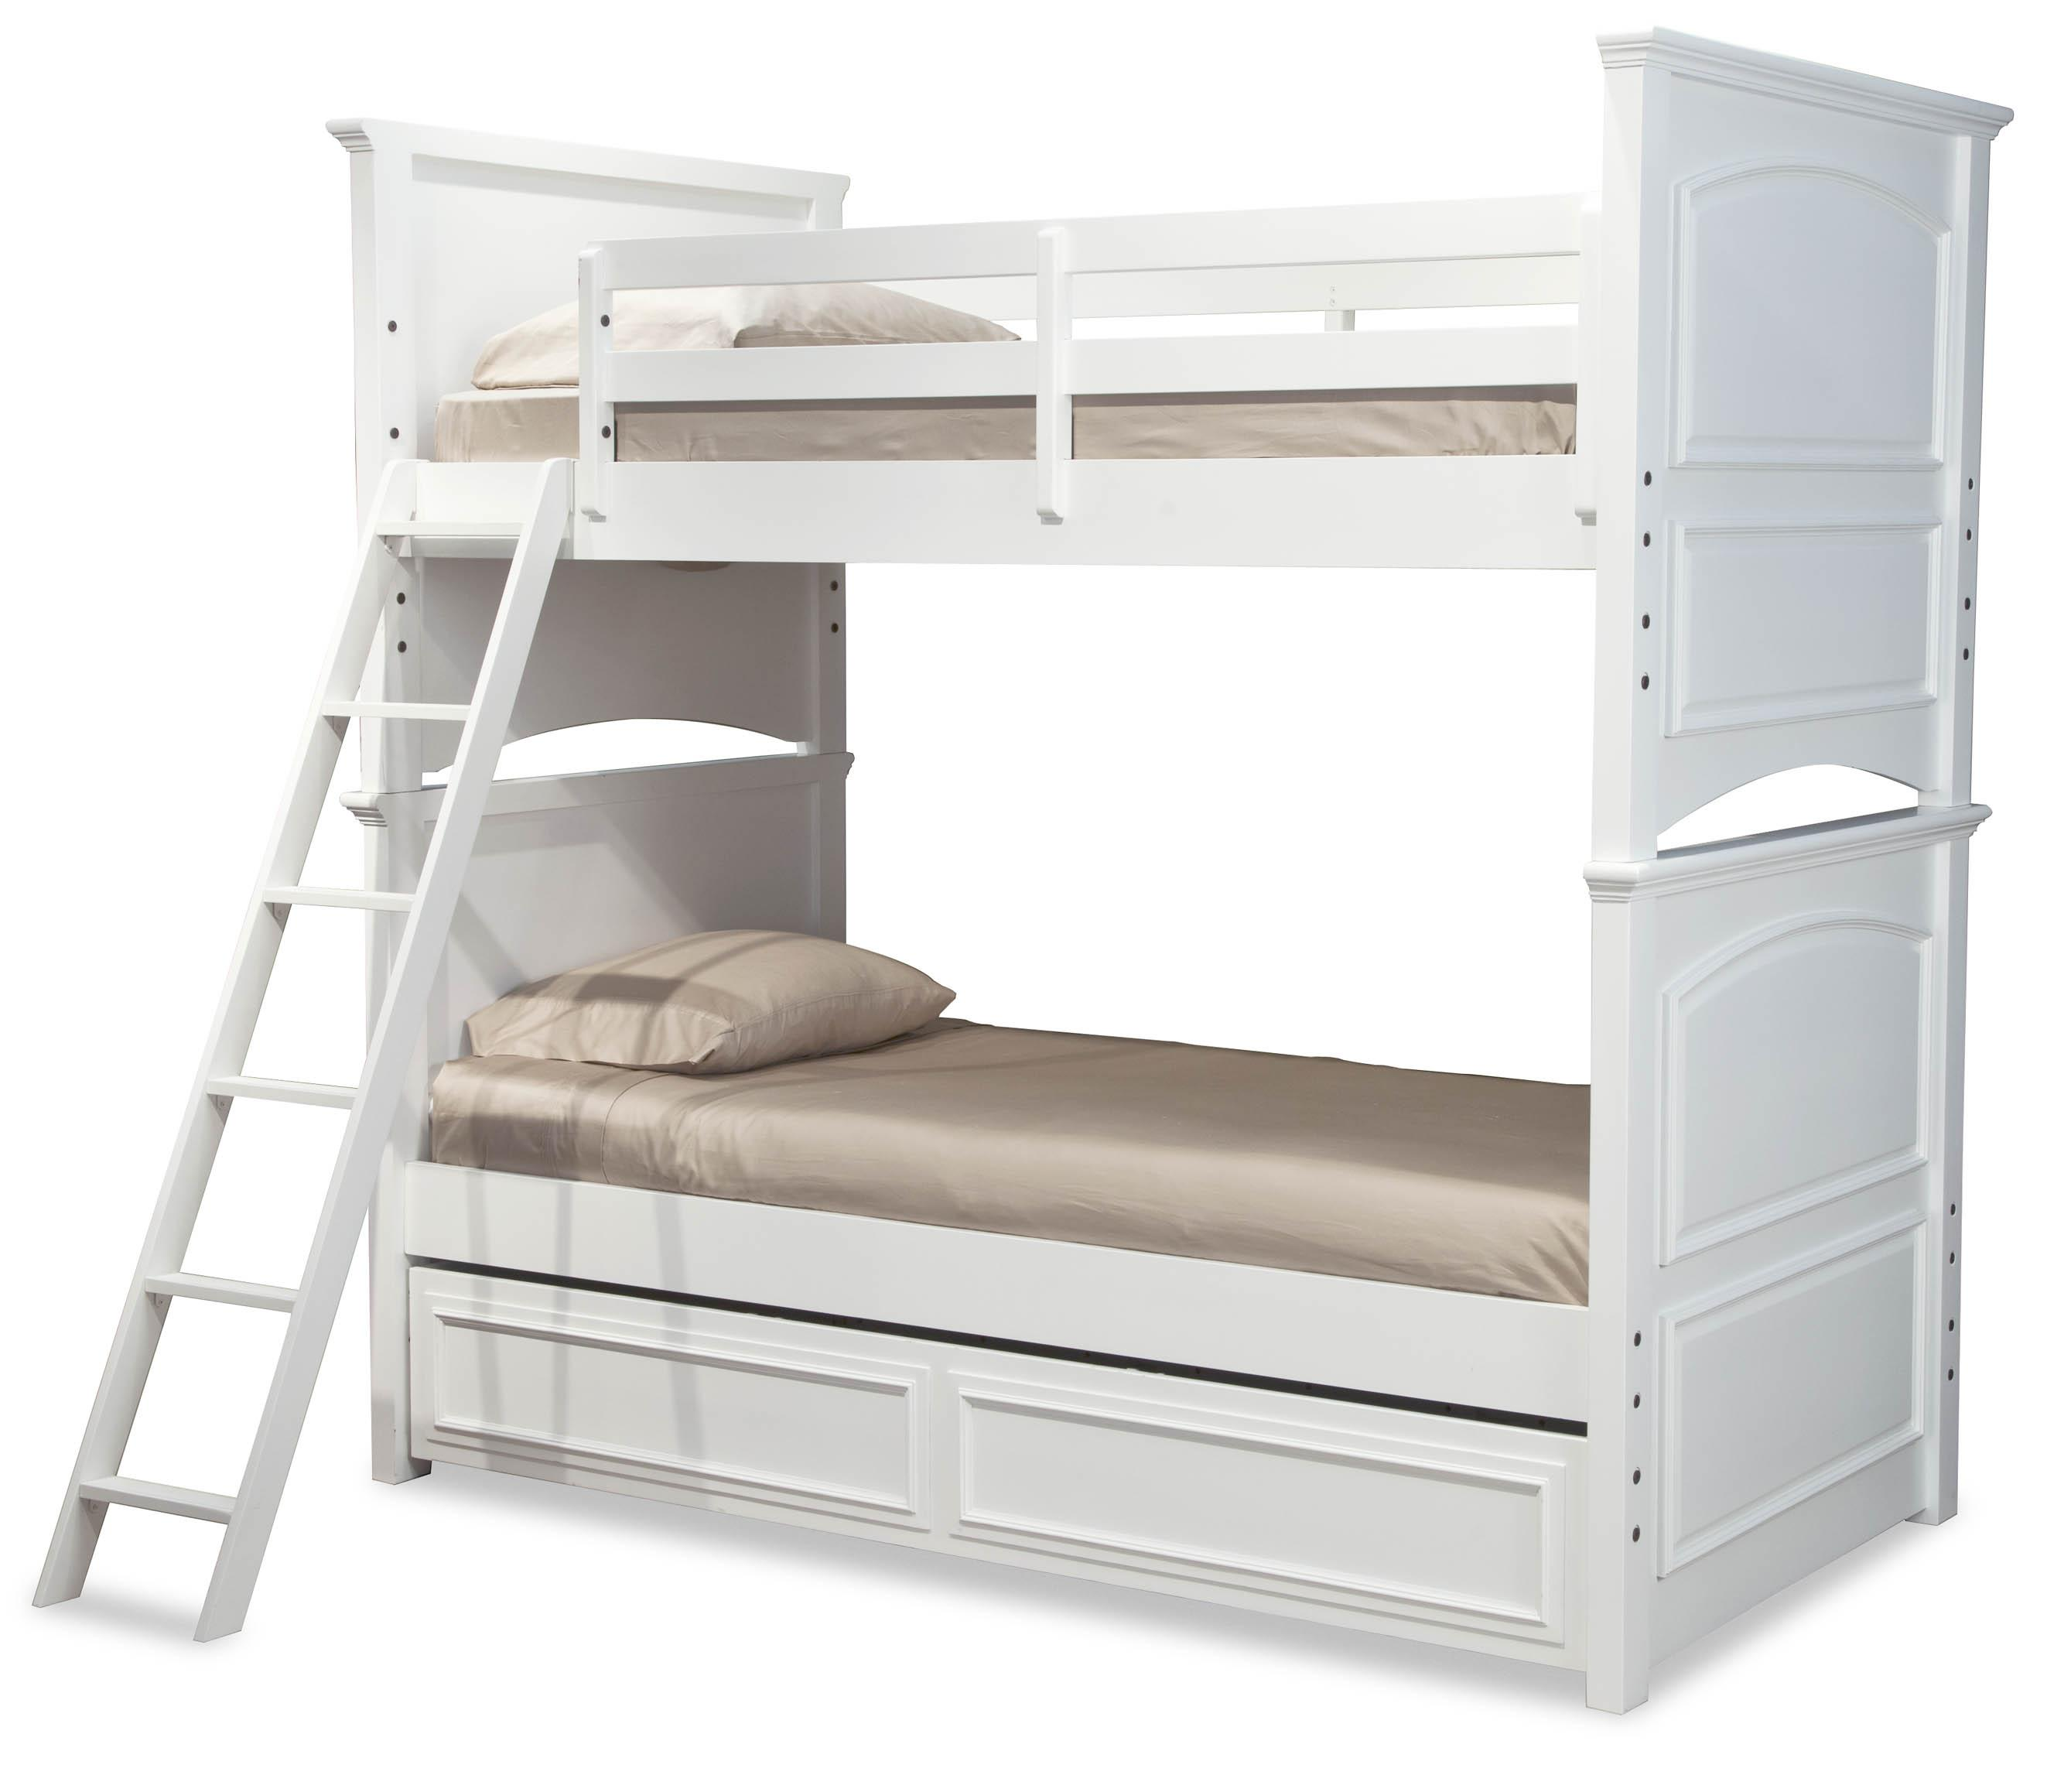 Classic Twin Over Full Size Bunk Bed With Trundle Drawer